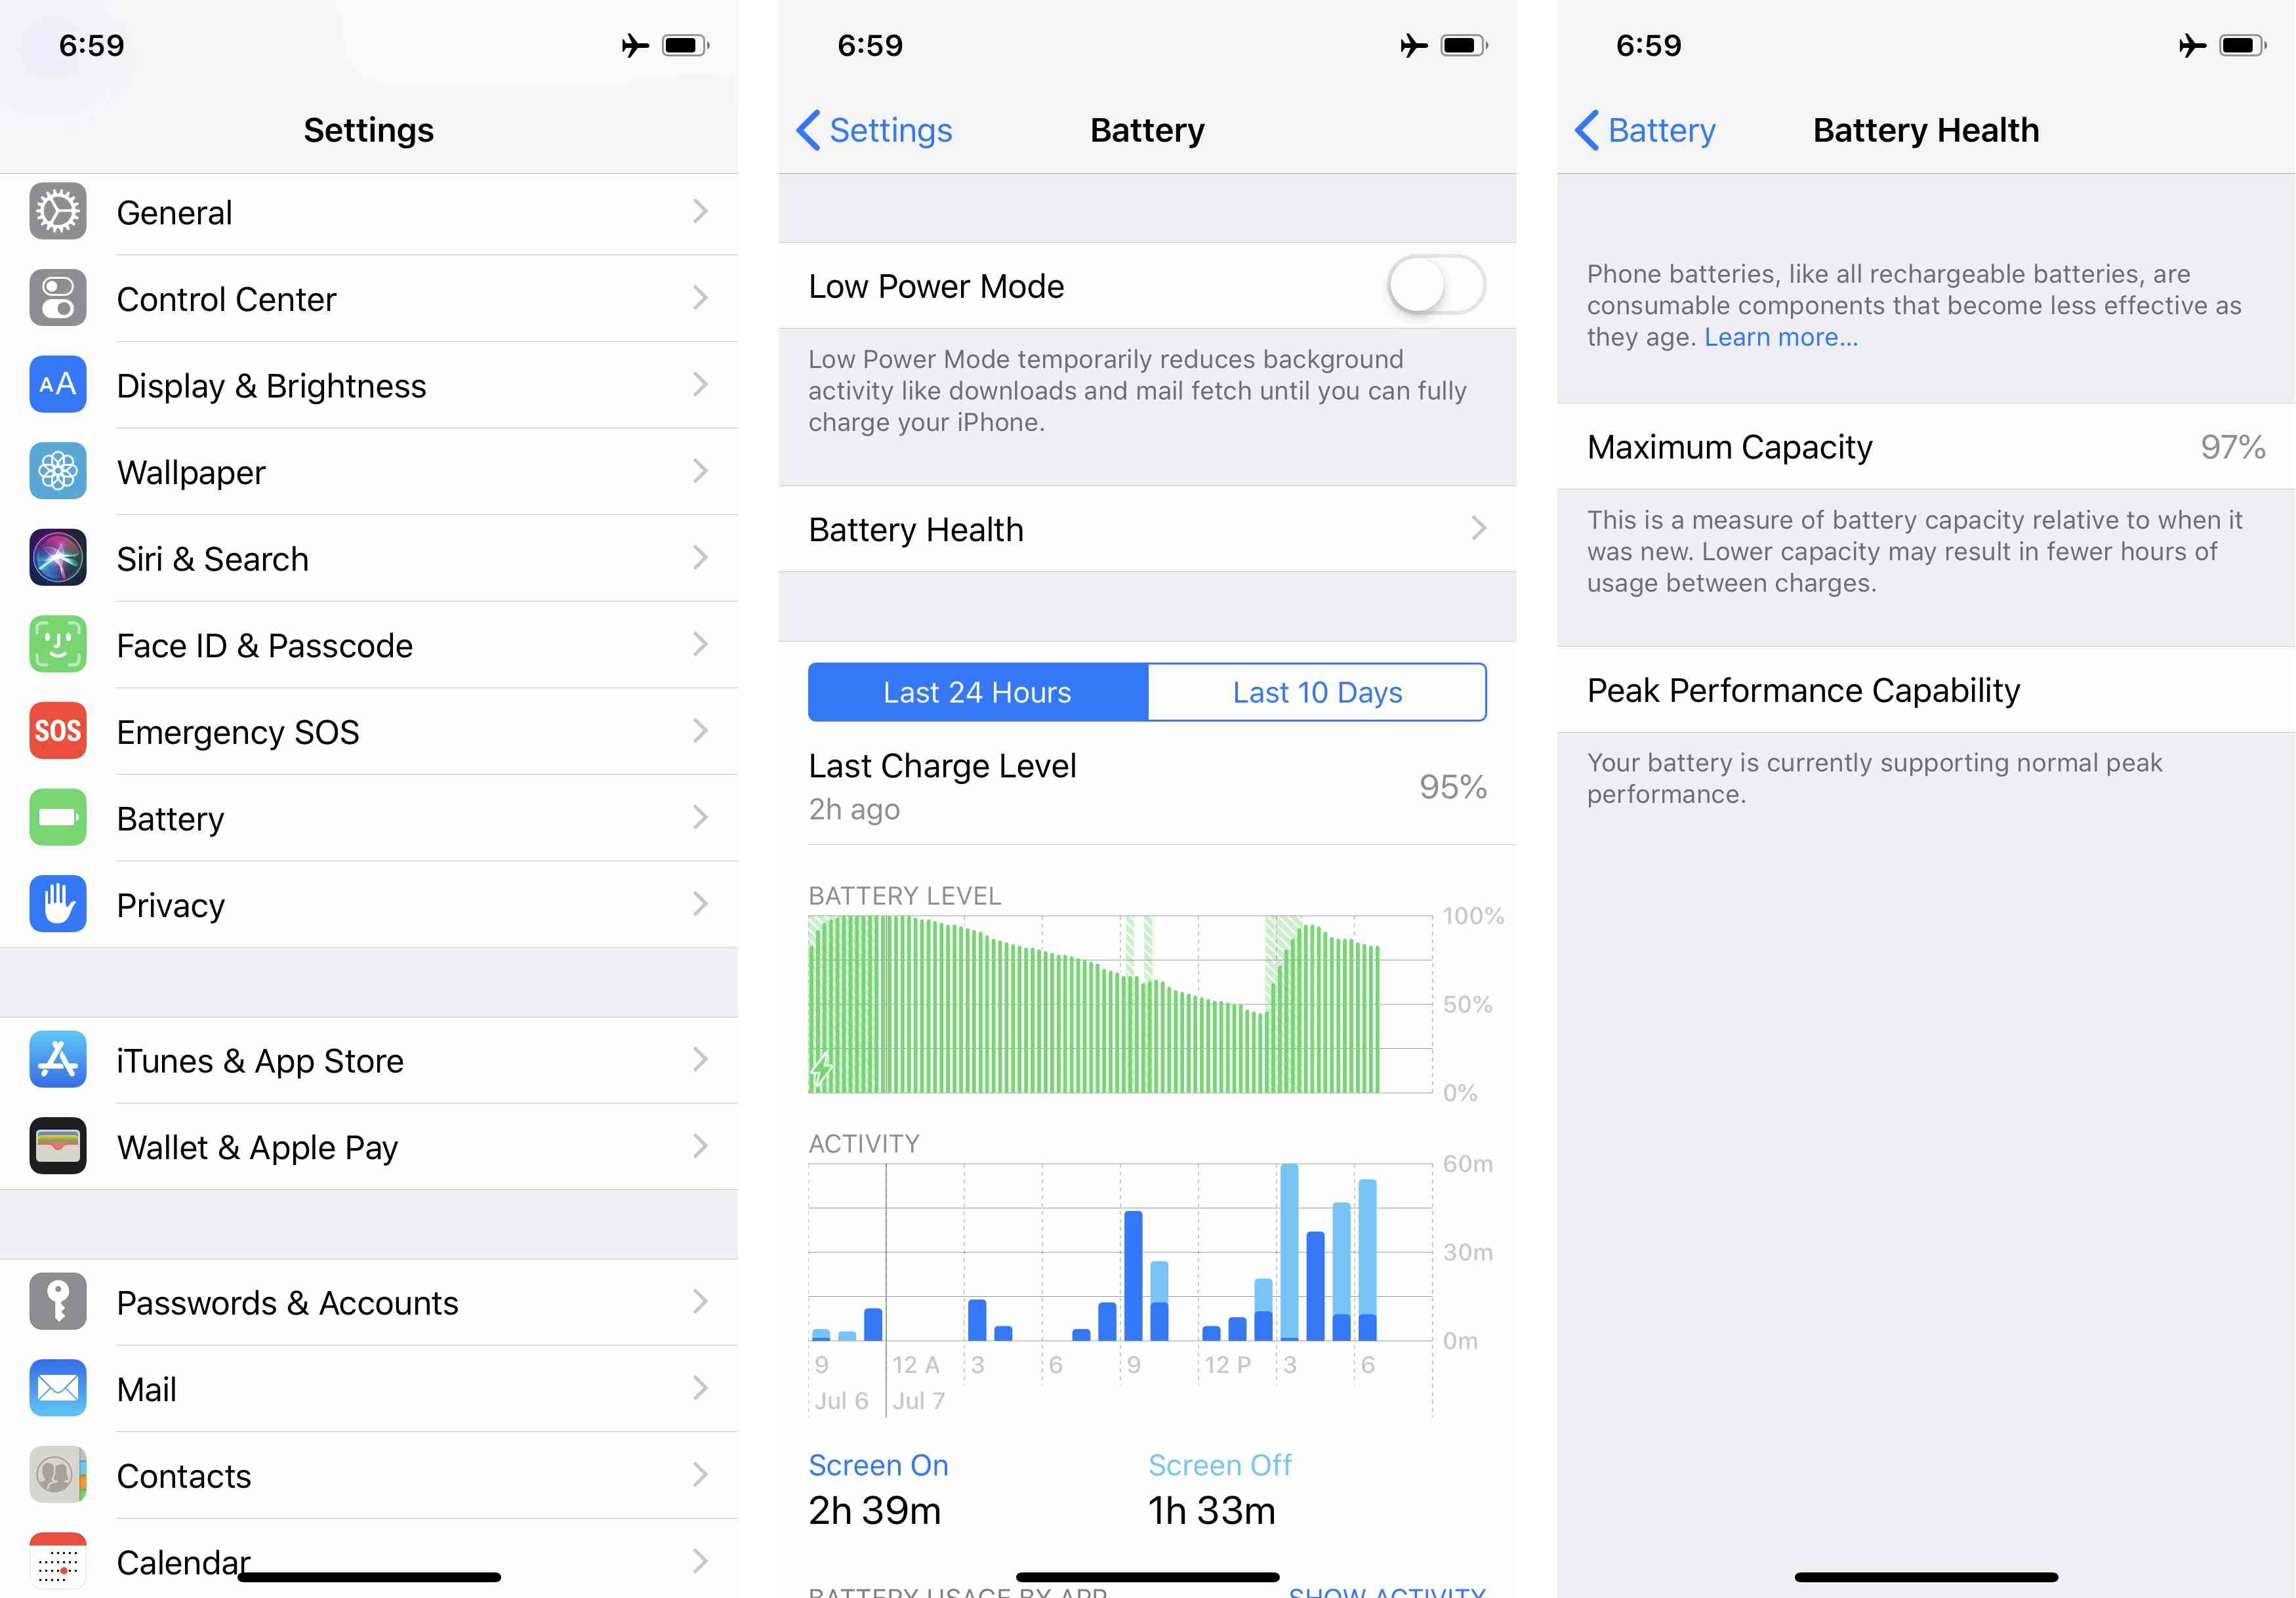 Screenshots of the iPhone Battery Health feature